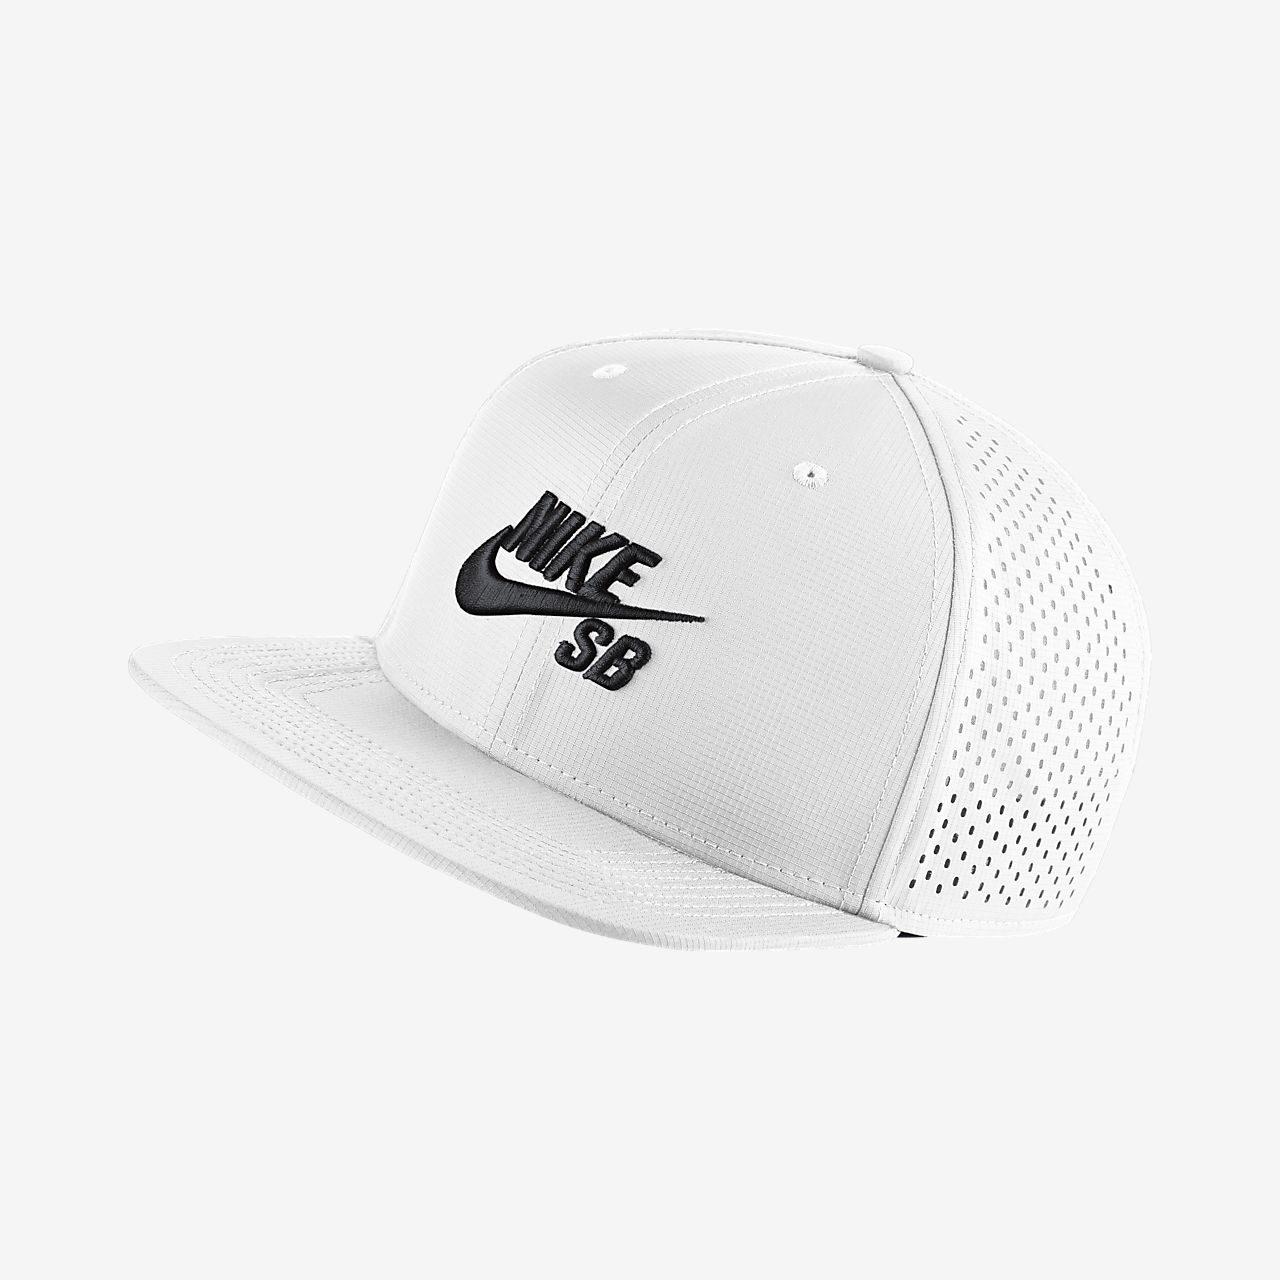 3be9d7604a8 Nike SB Performance Trucker Hat. Nike.com